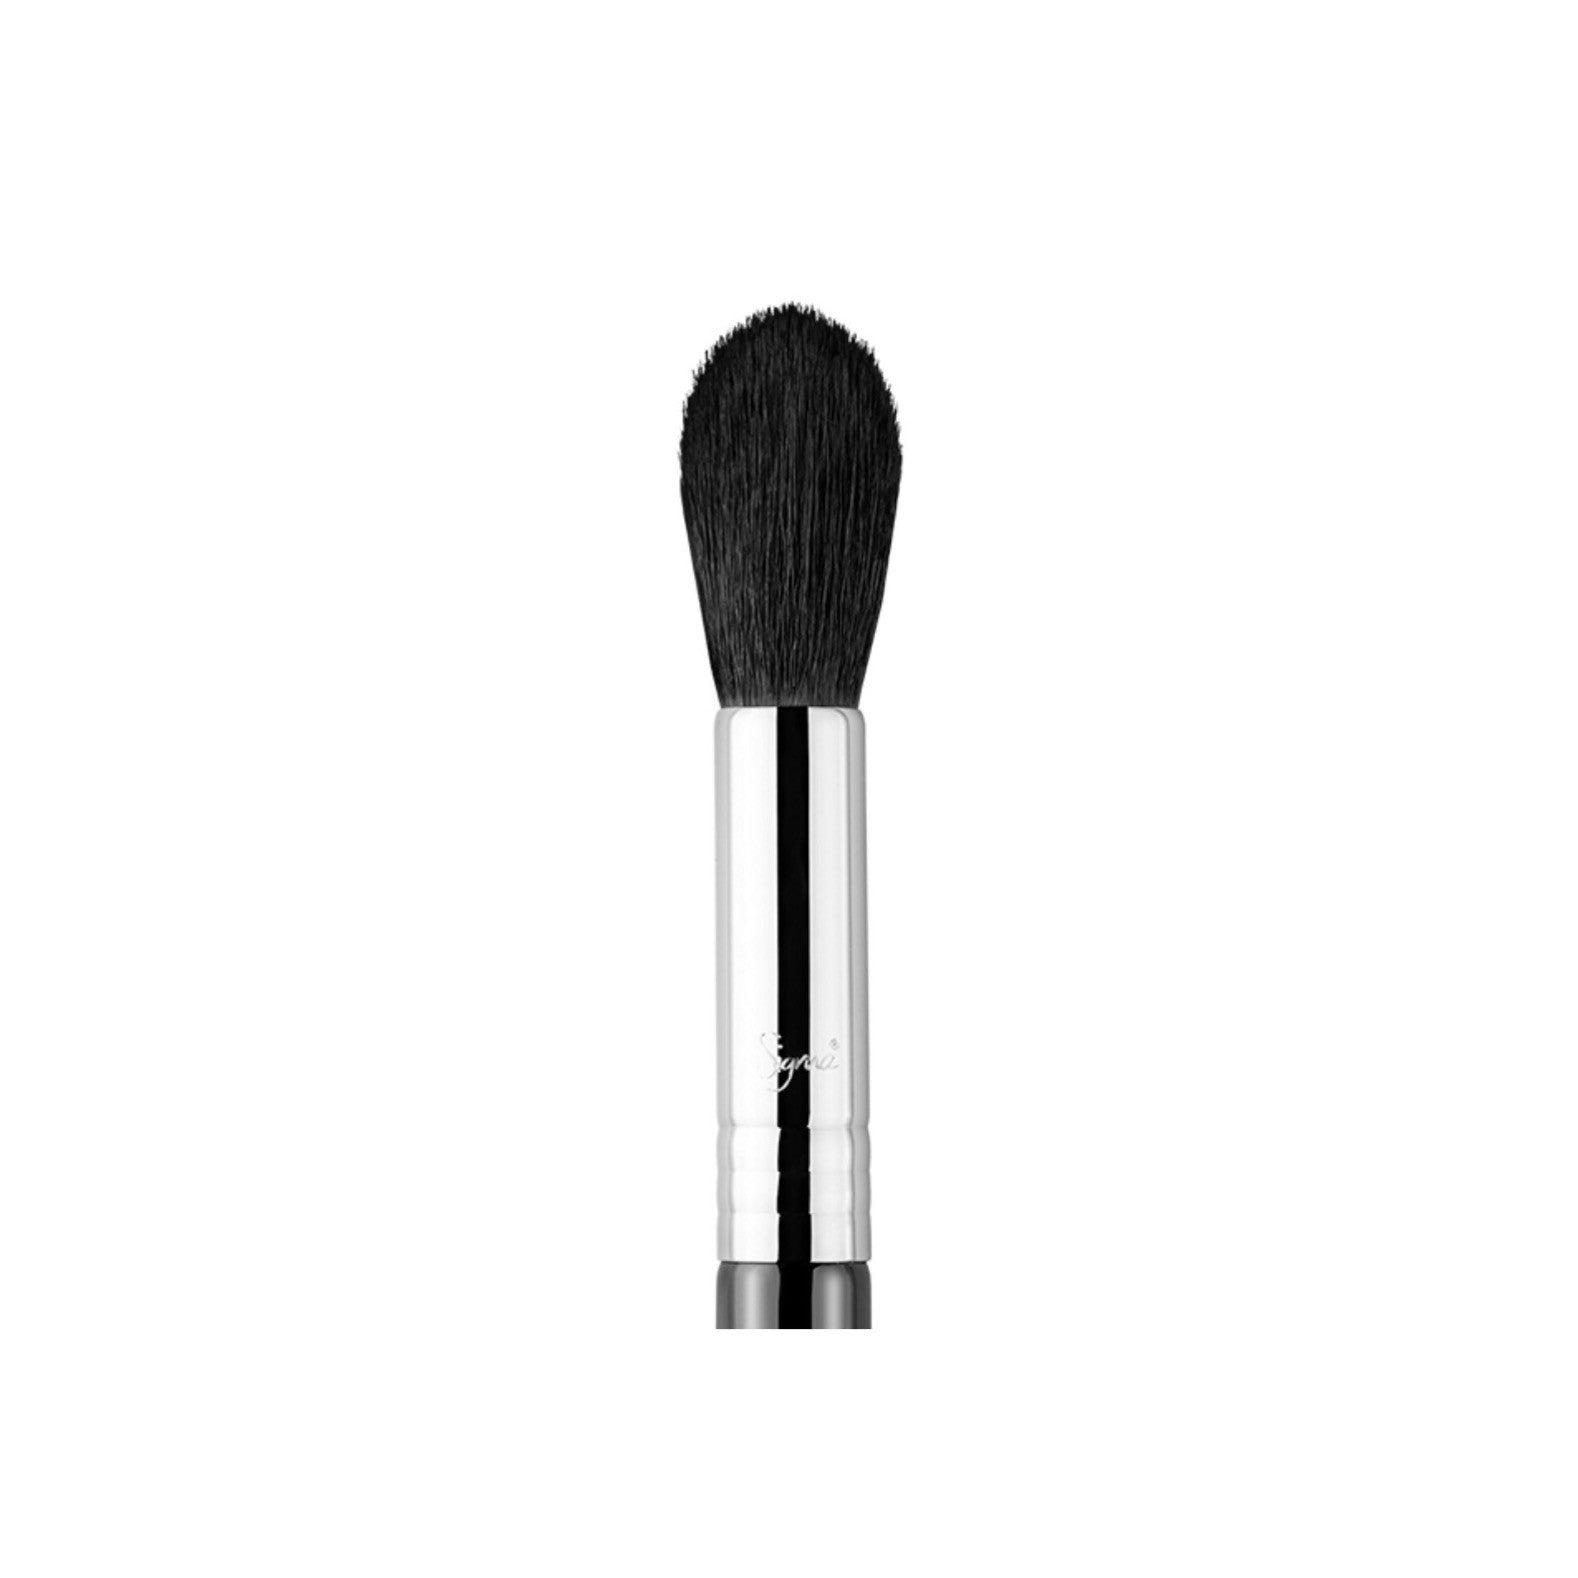 Tools & Brushes - F35 - Tapered Highlighter Brush